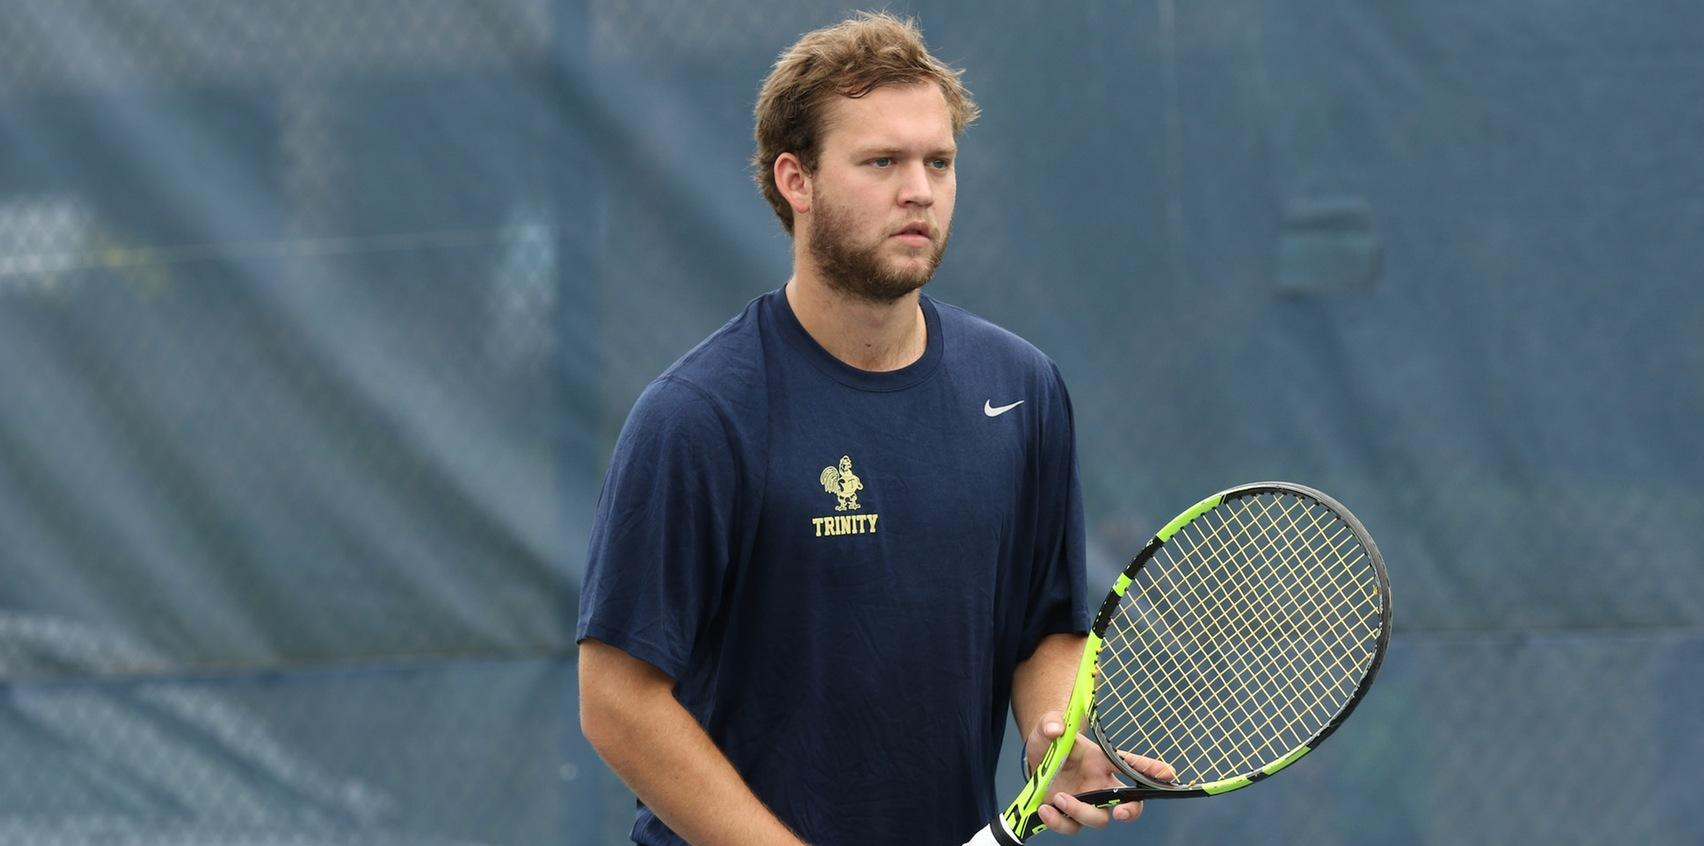 Trinity Men's Tennis Nets First Win Of The Season At Coast Guard